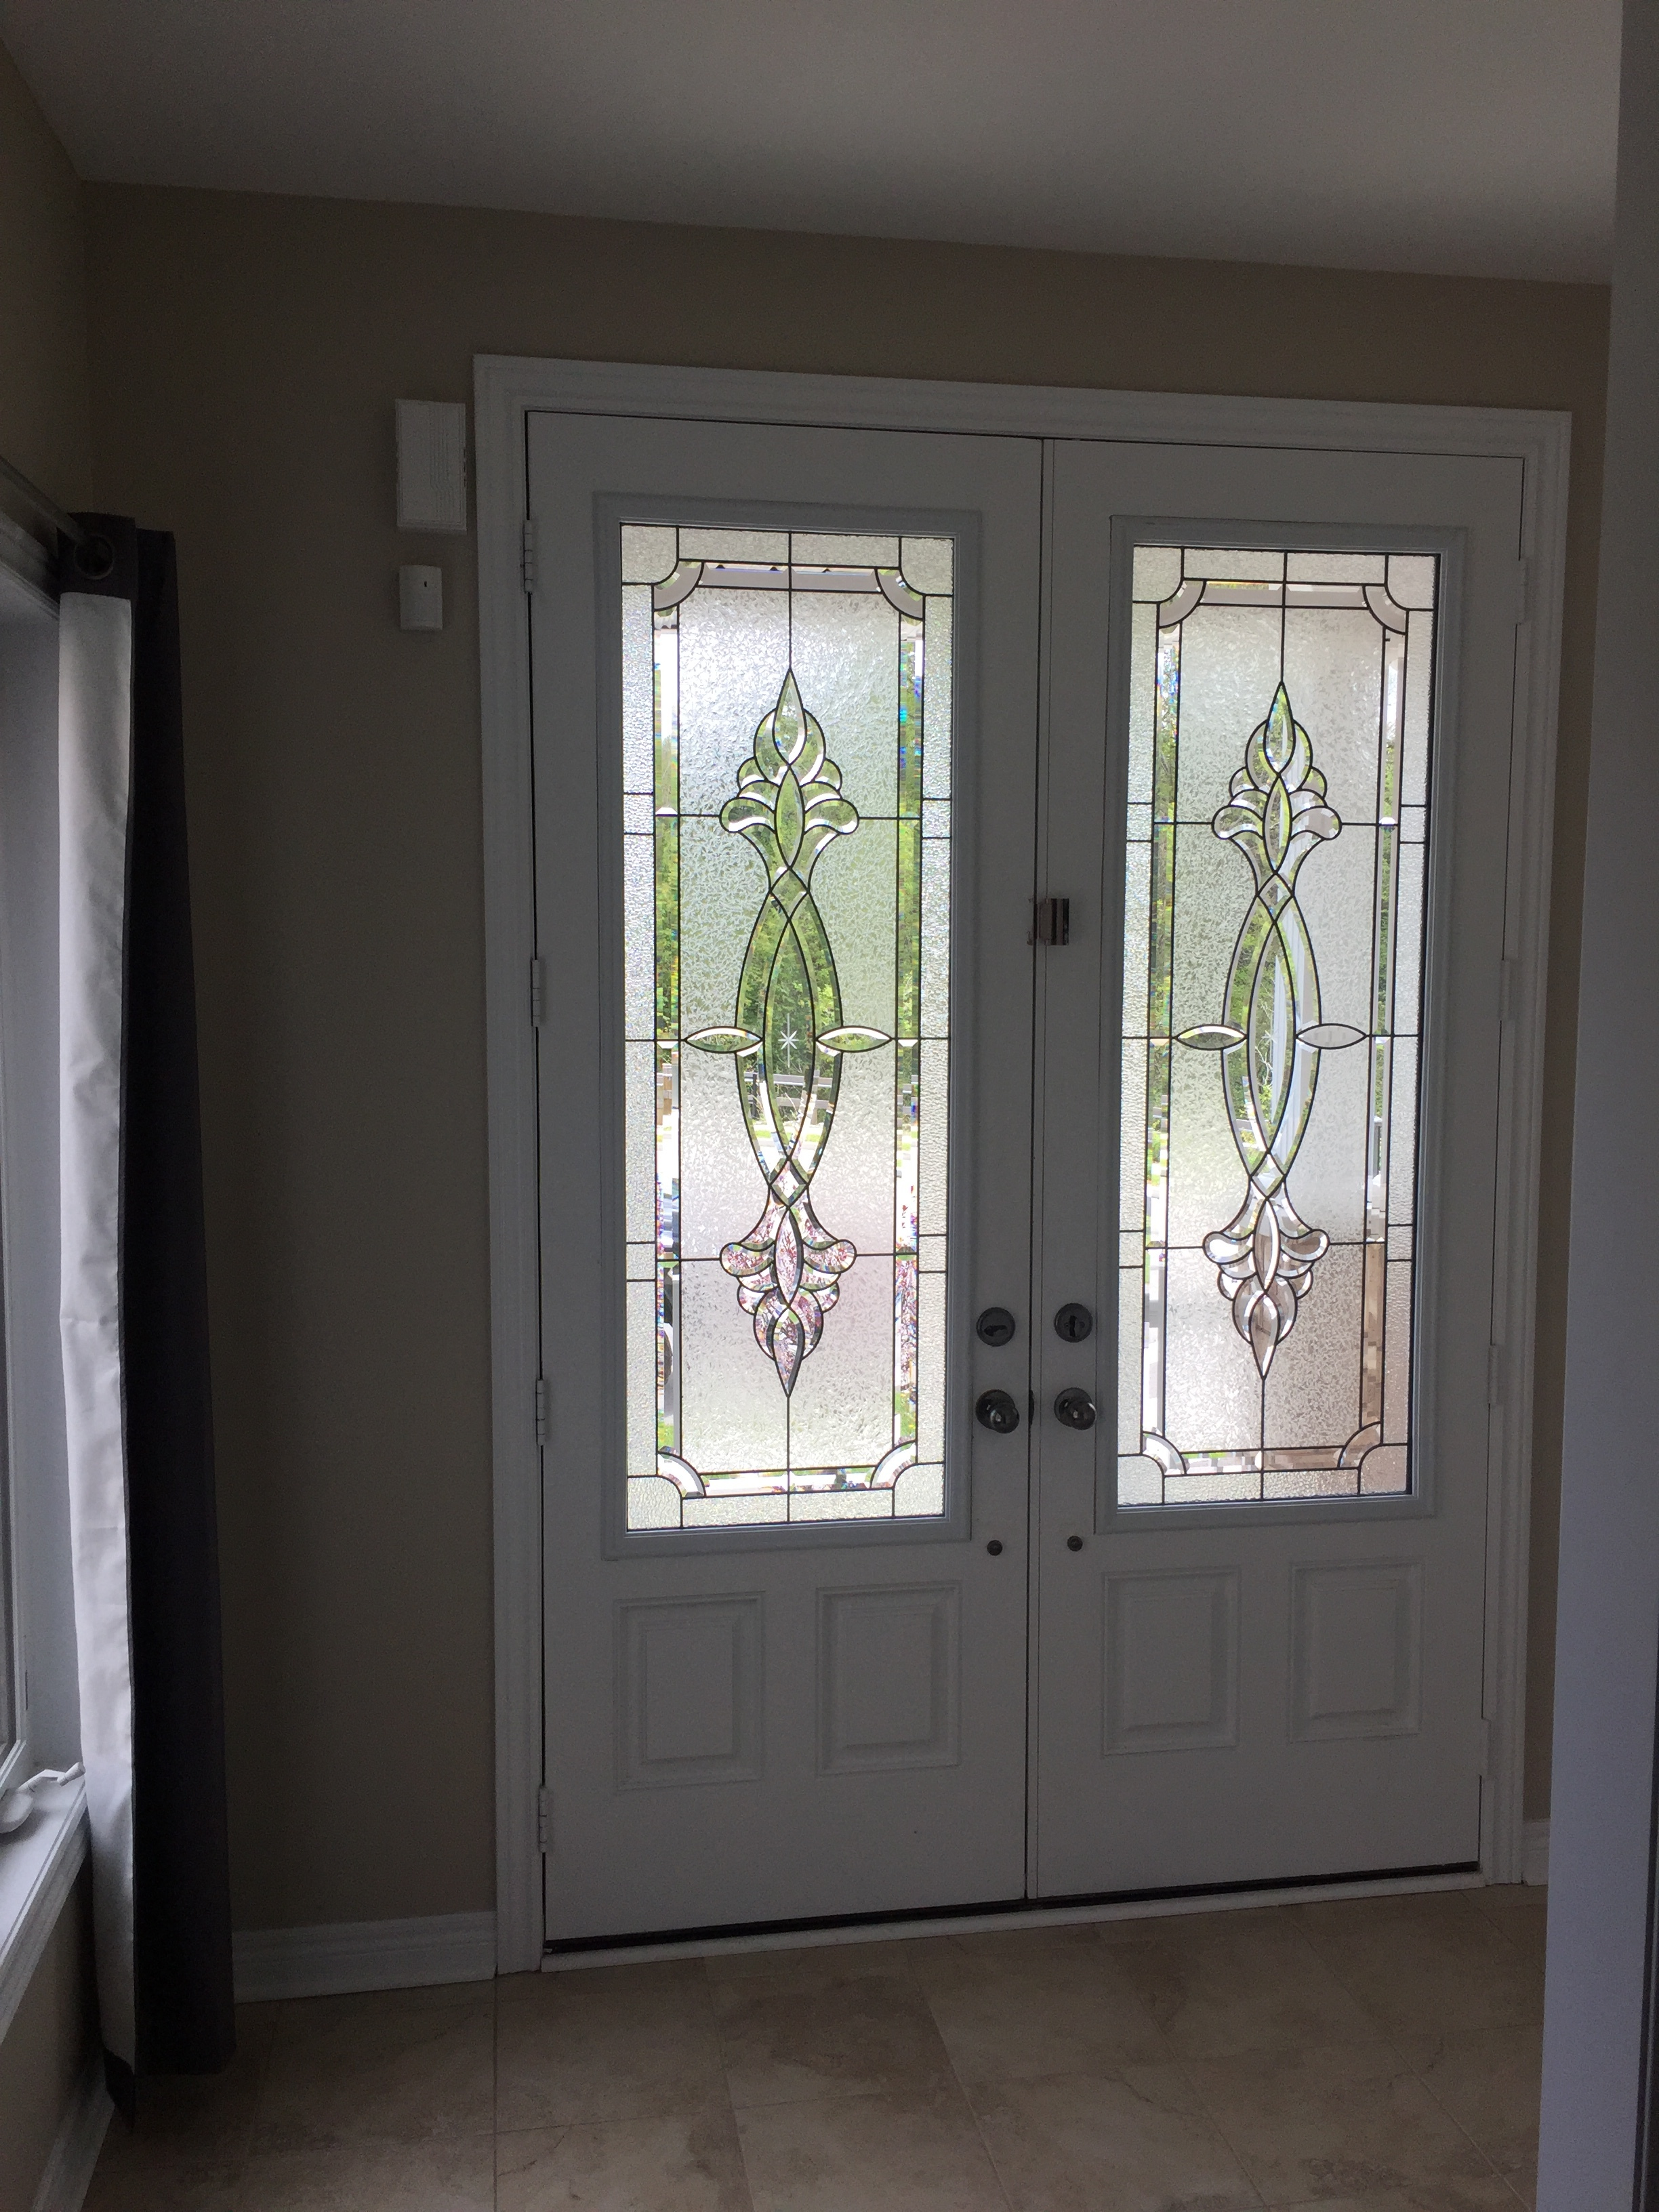 Northhampton-Decorative-Glass-Door-Inserts-Midland-ontario